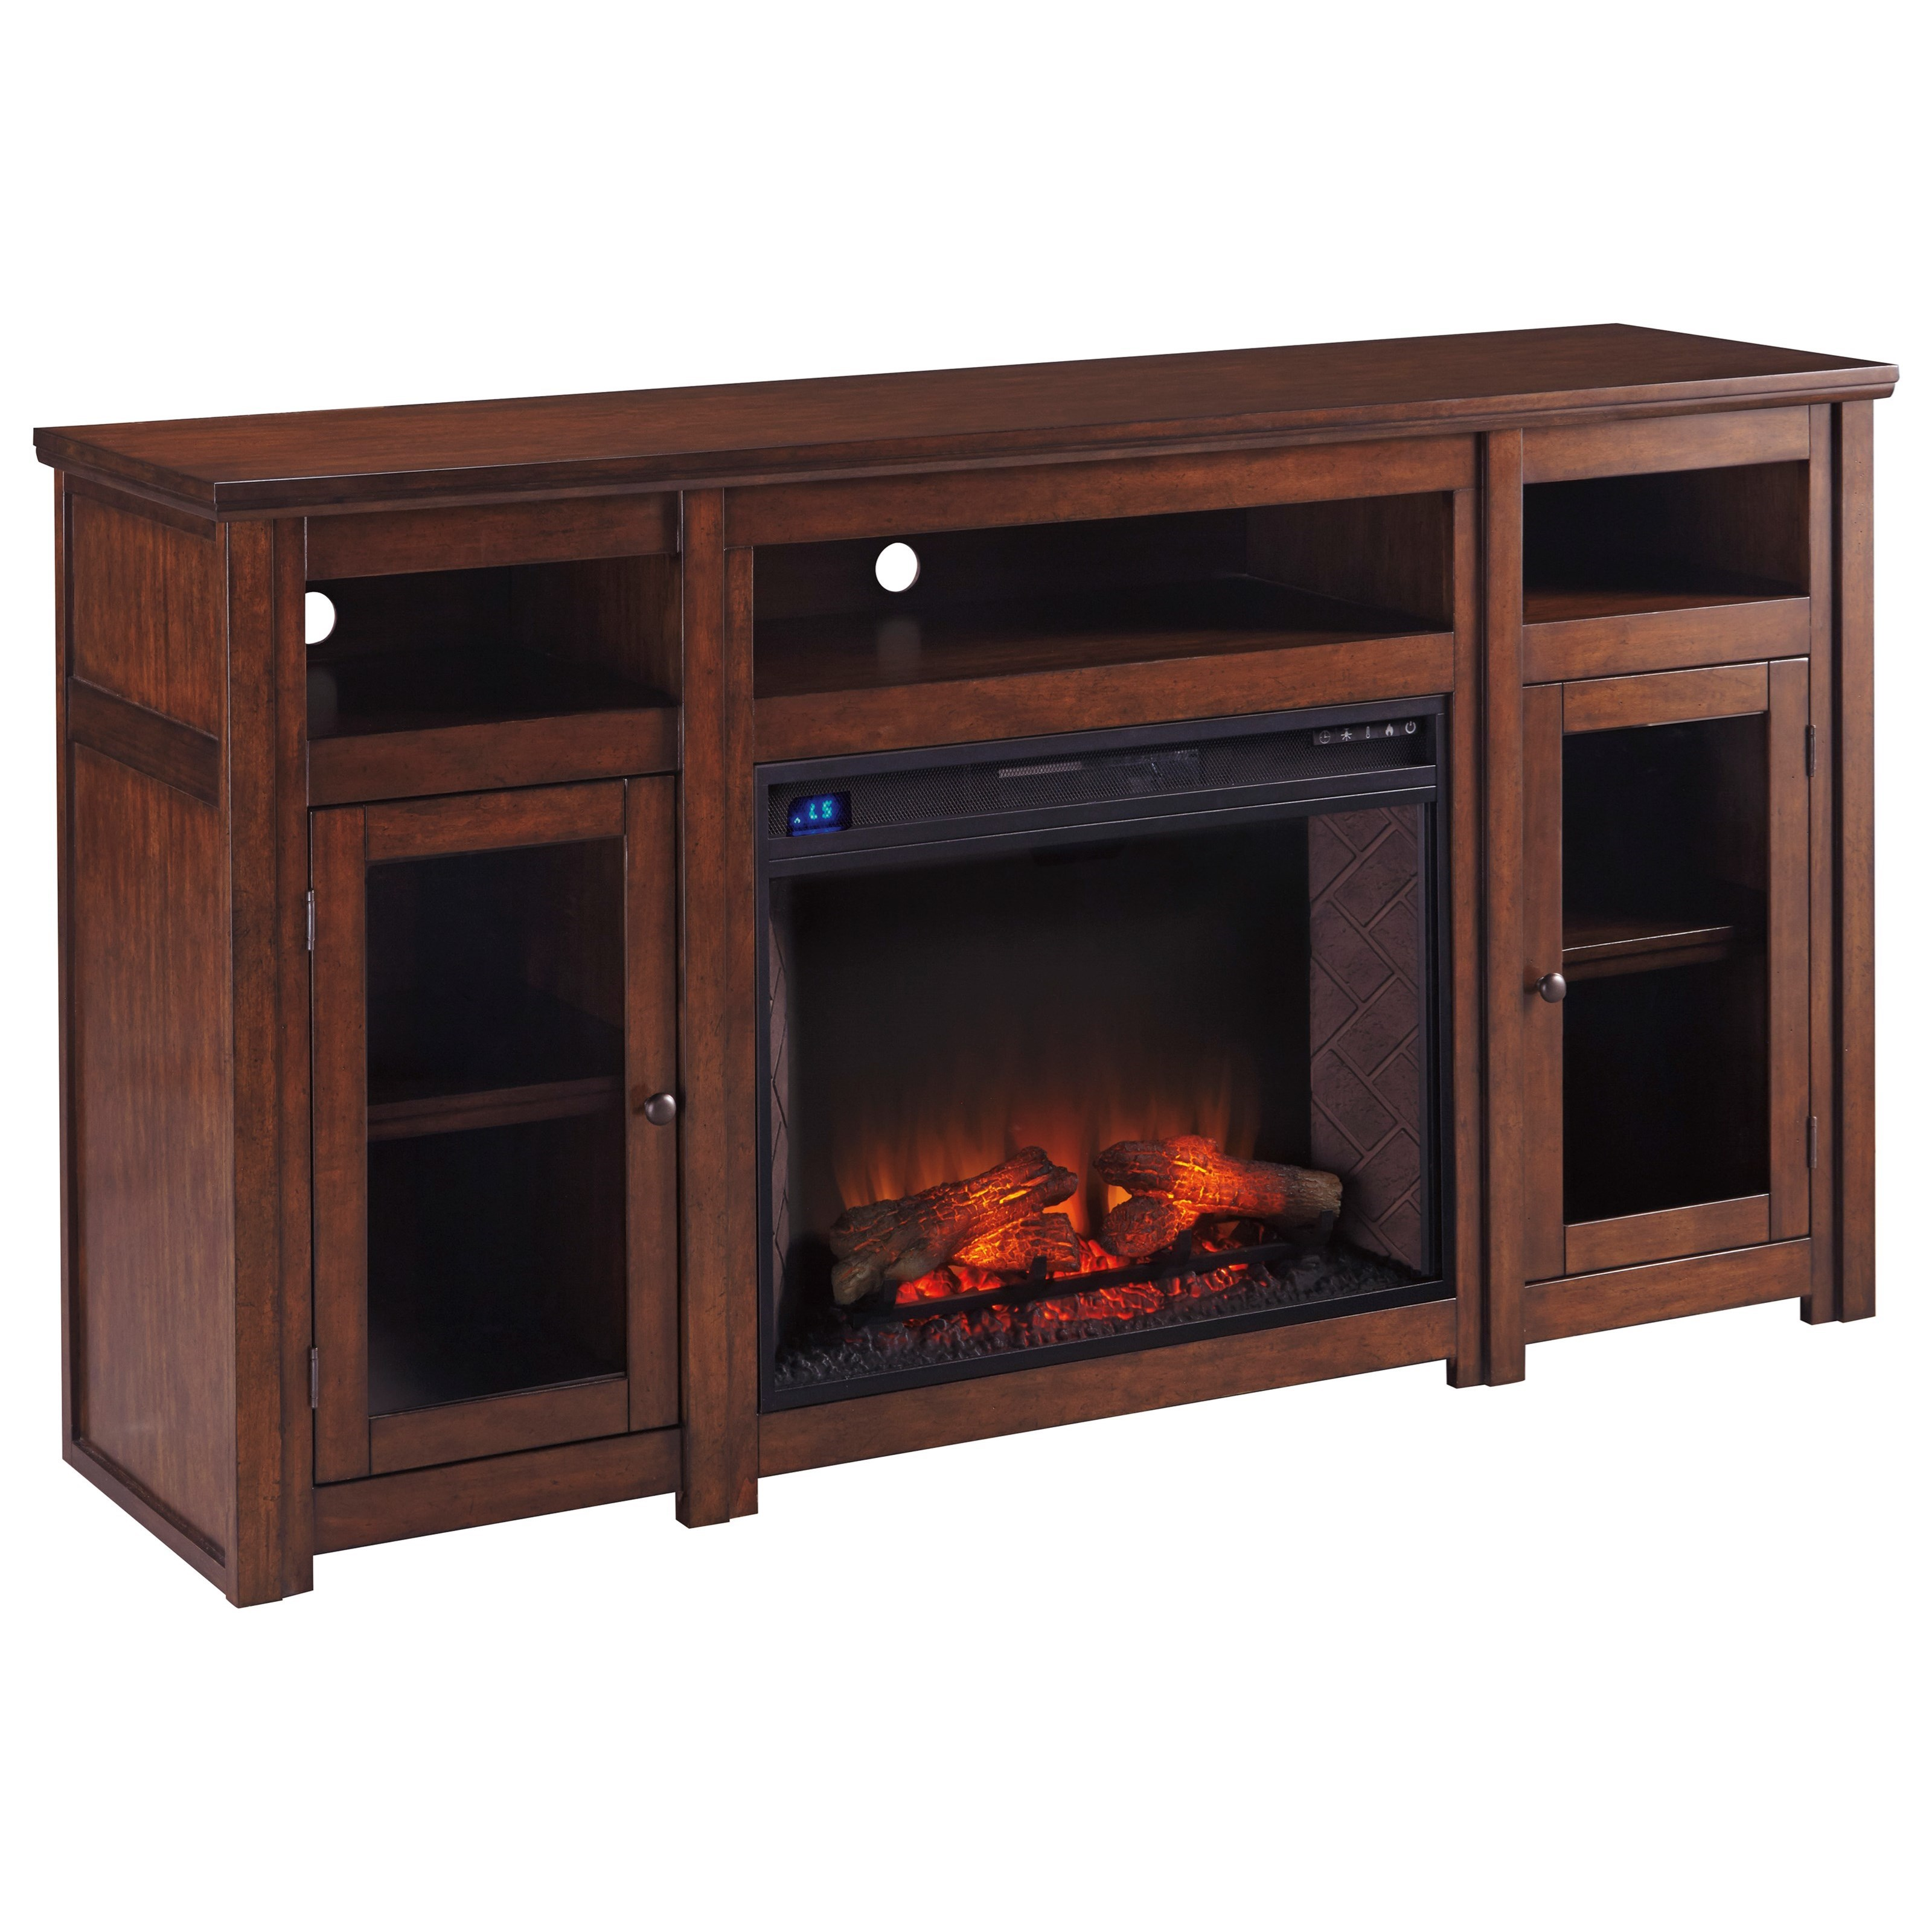 Extra Large TV Stand w/ Fireplace Insert